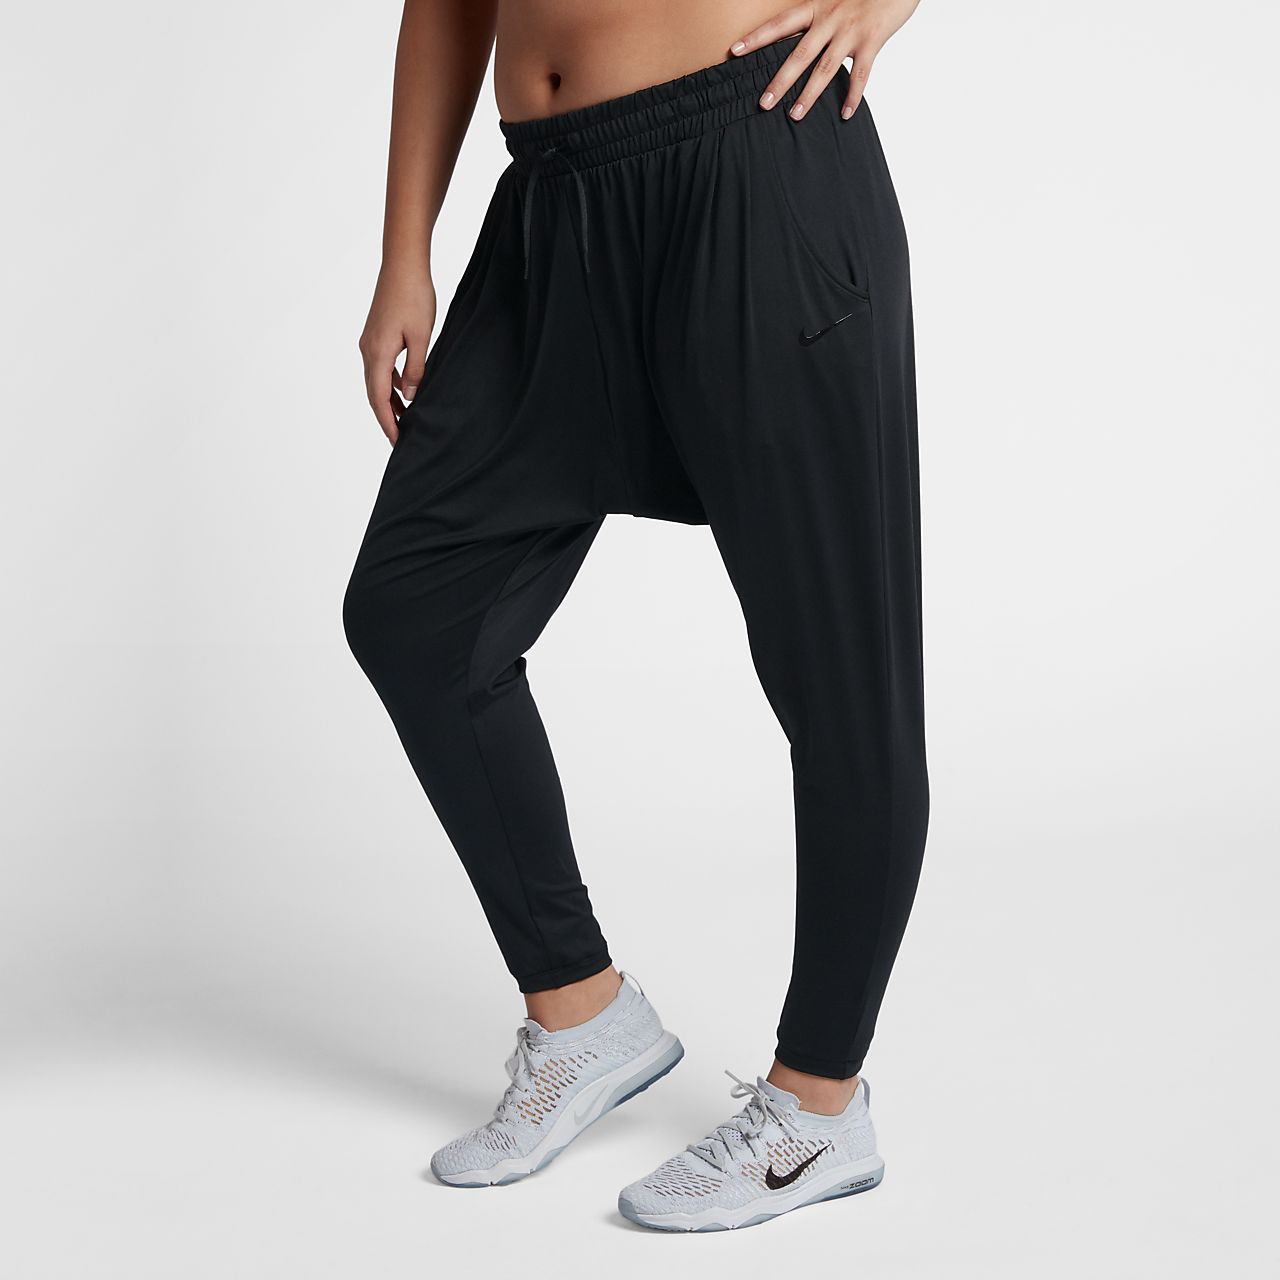 7be2297c223 Nike Dri-FIT Flow (Plus Size) Women s Training Trousers. Nike.com NZ